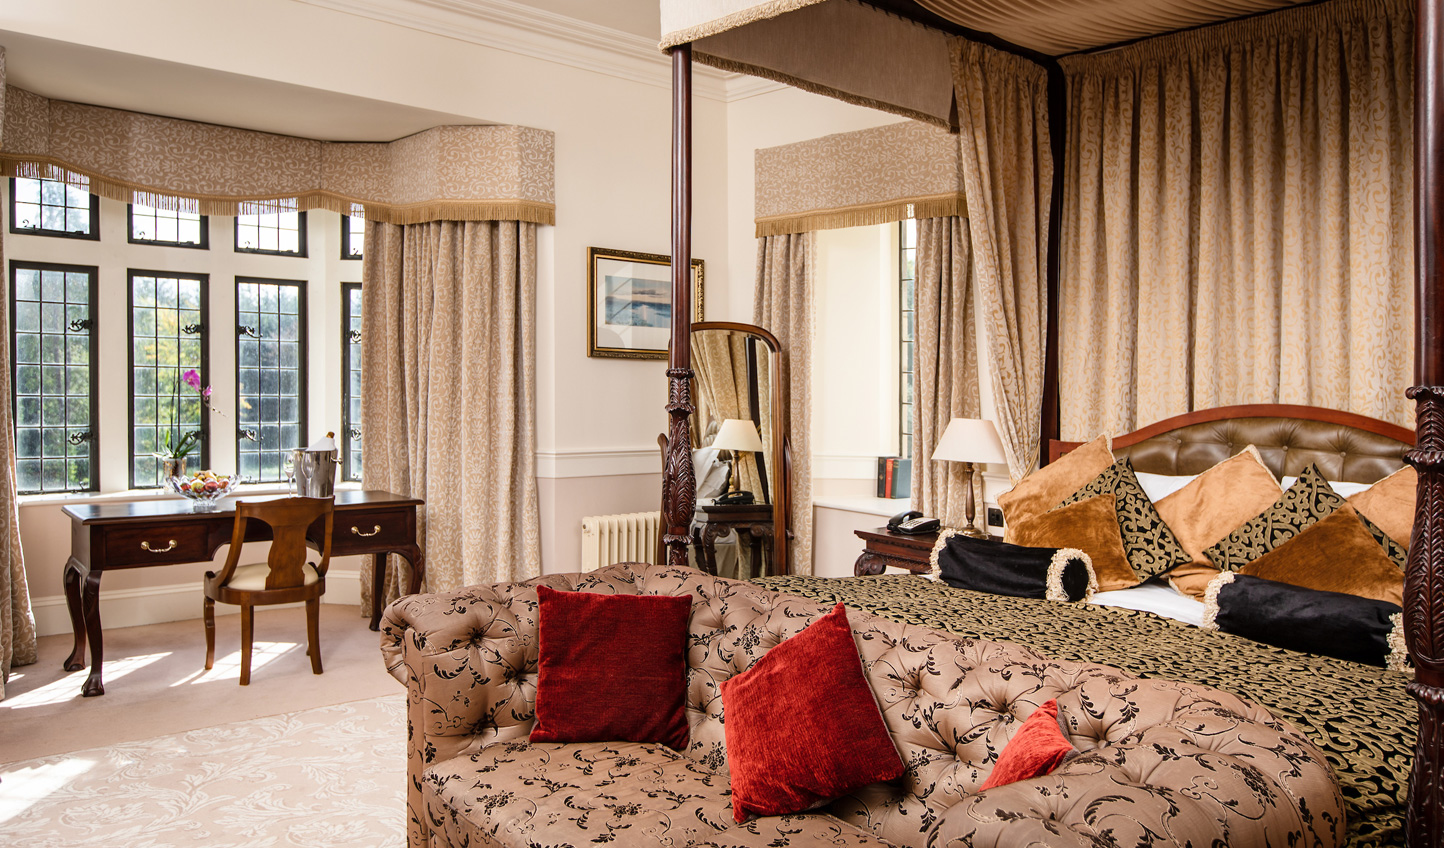 Refined and traditional suites give a sense of splendour